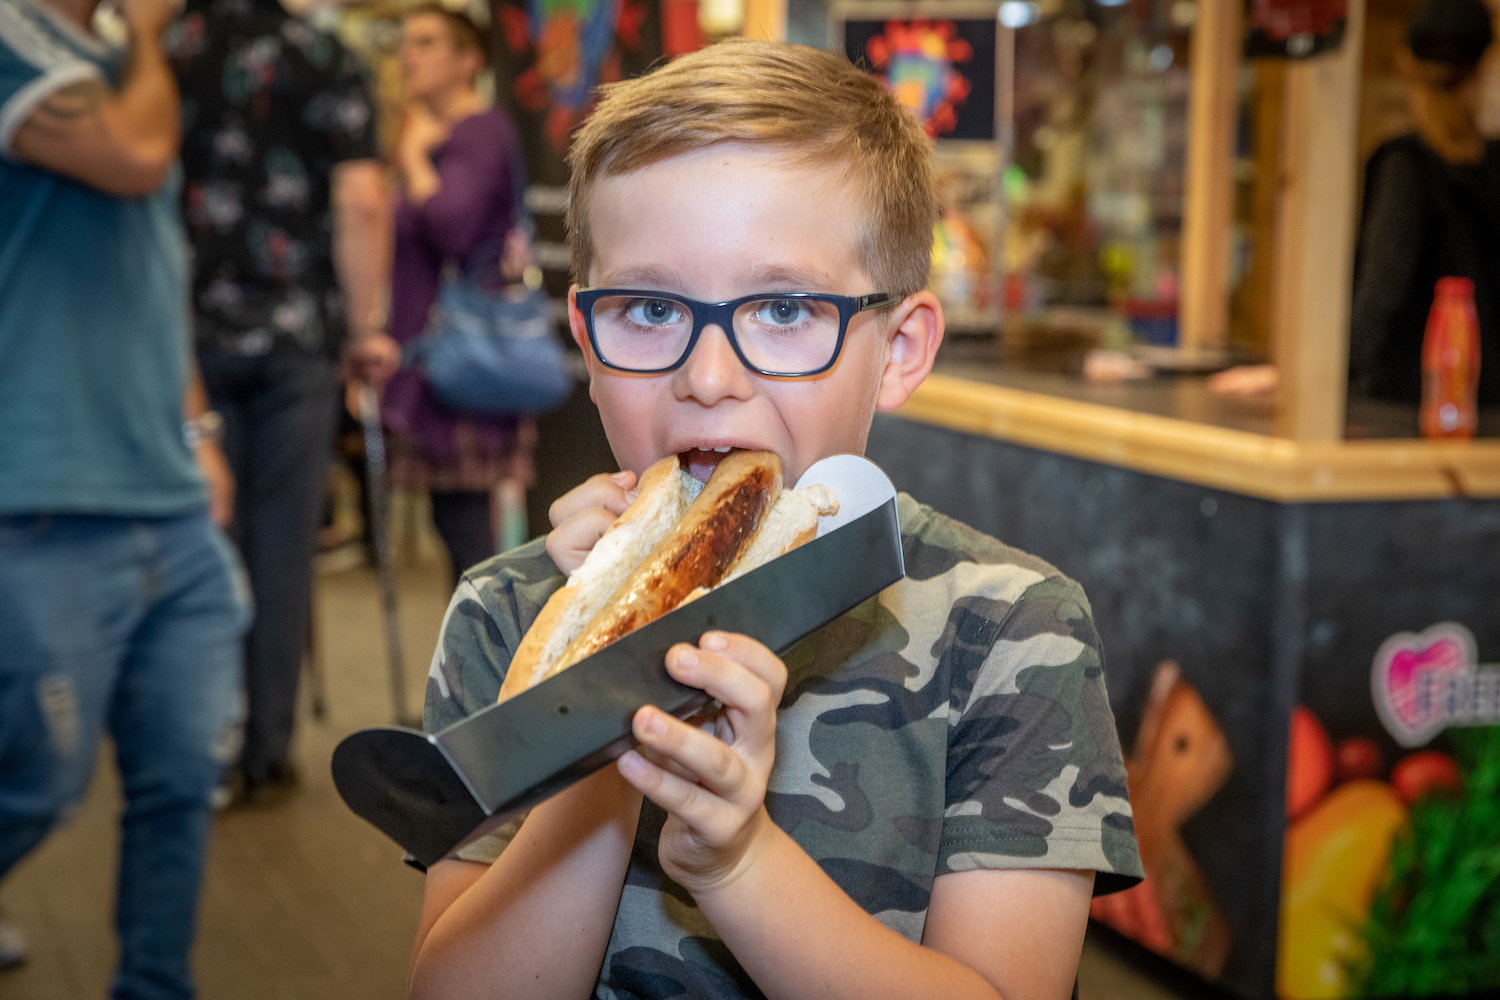 Young Boy Eating A Hot Dog - Freeman St Food Fight Event